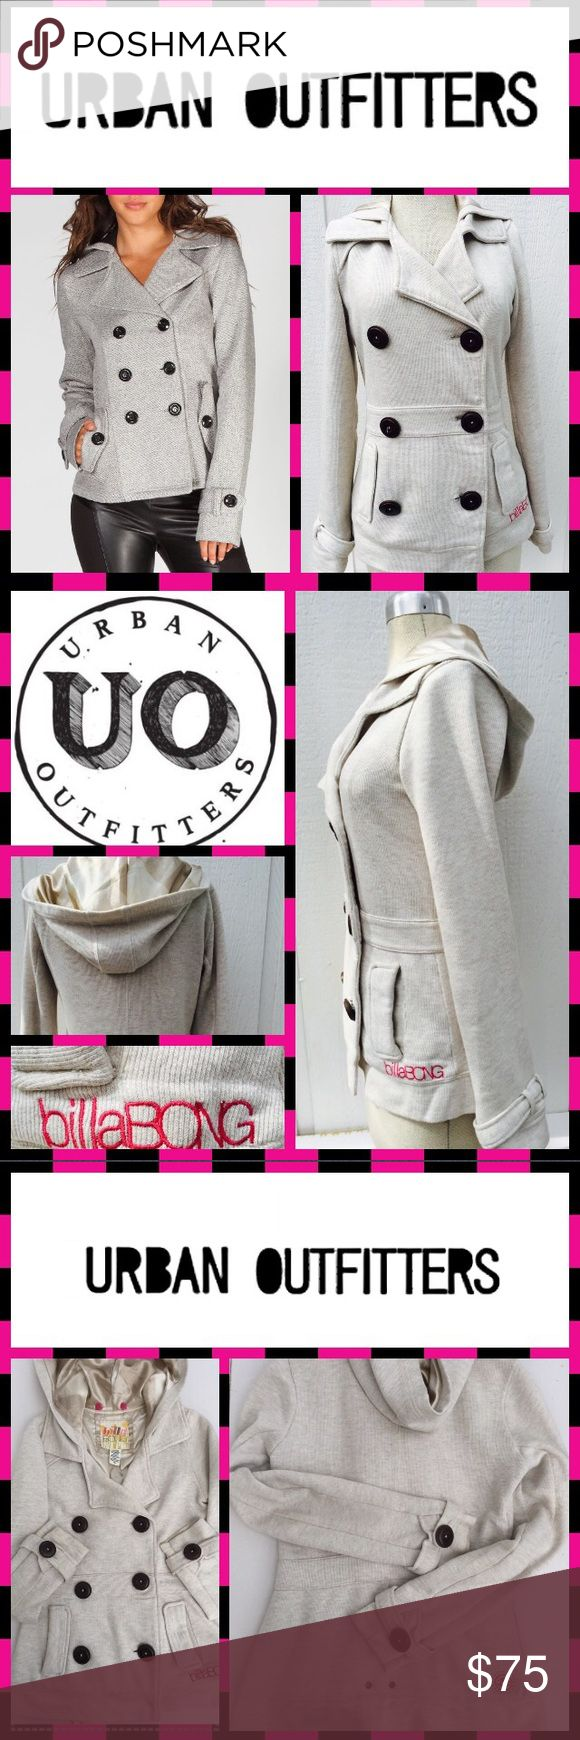 Cozy Jersey Hooded Fall Peacoat Jacket urban outfitters comfy beige/cream jersey knit peacoat by billabong. Comes with two exterior pockets, double breasted button down style, satin like lining and hood. Button details on sleeves and nice belted feel with the fitting around the waist. Easy to clean. Nice condition. Missing the interior snap button that can easily be added from any fabric store. Otherwise in great shape! Size xs fits like a 2-4 in ladies. Perfect fall jacket! 100% vegan. MSRP…